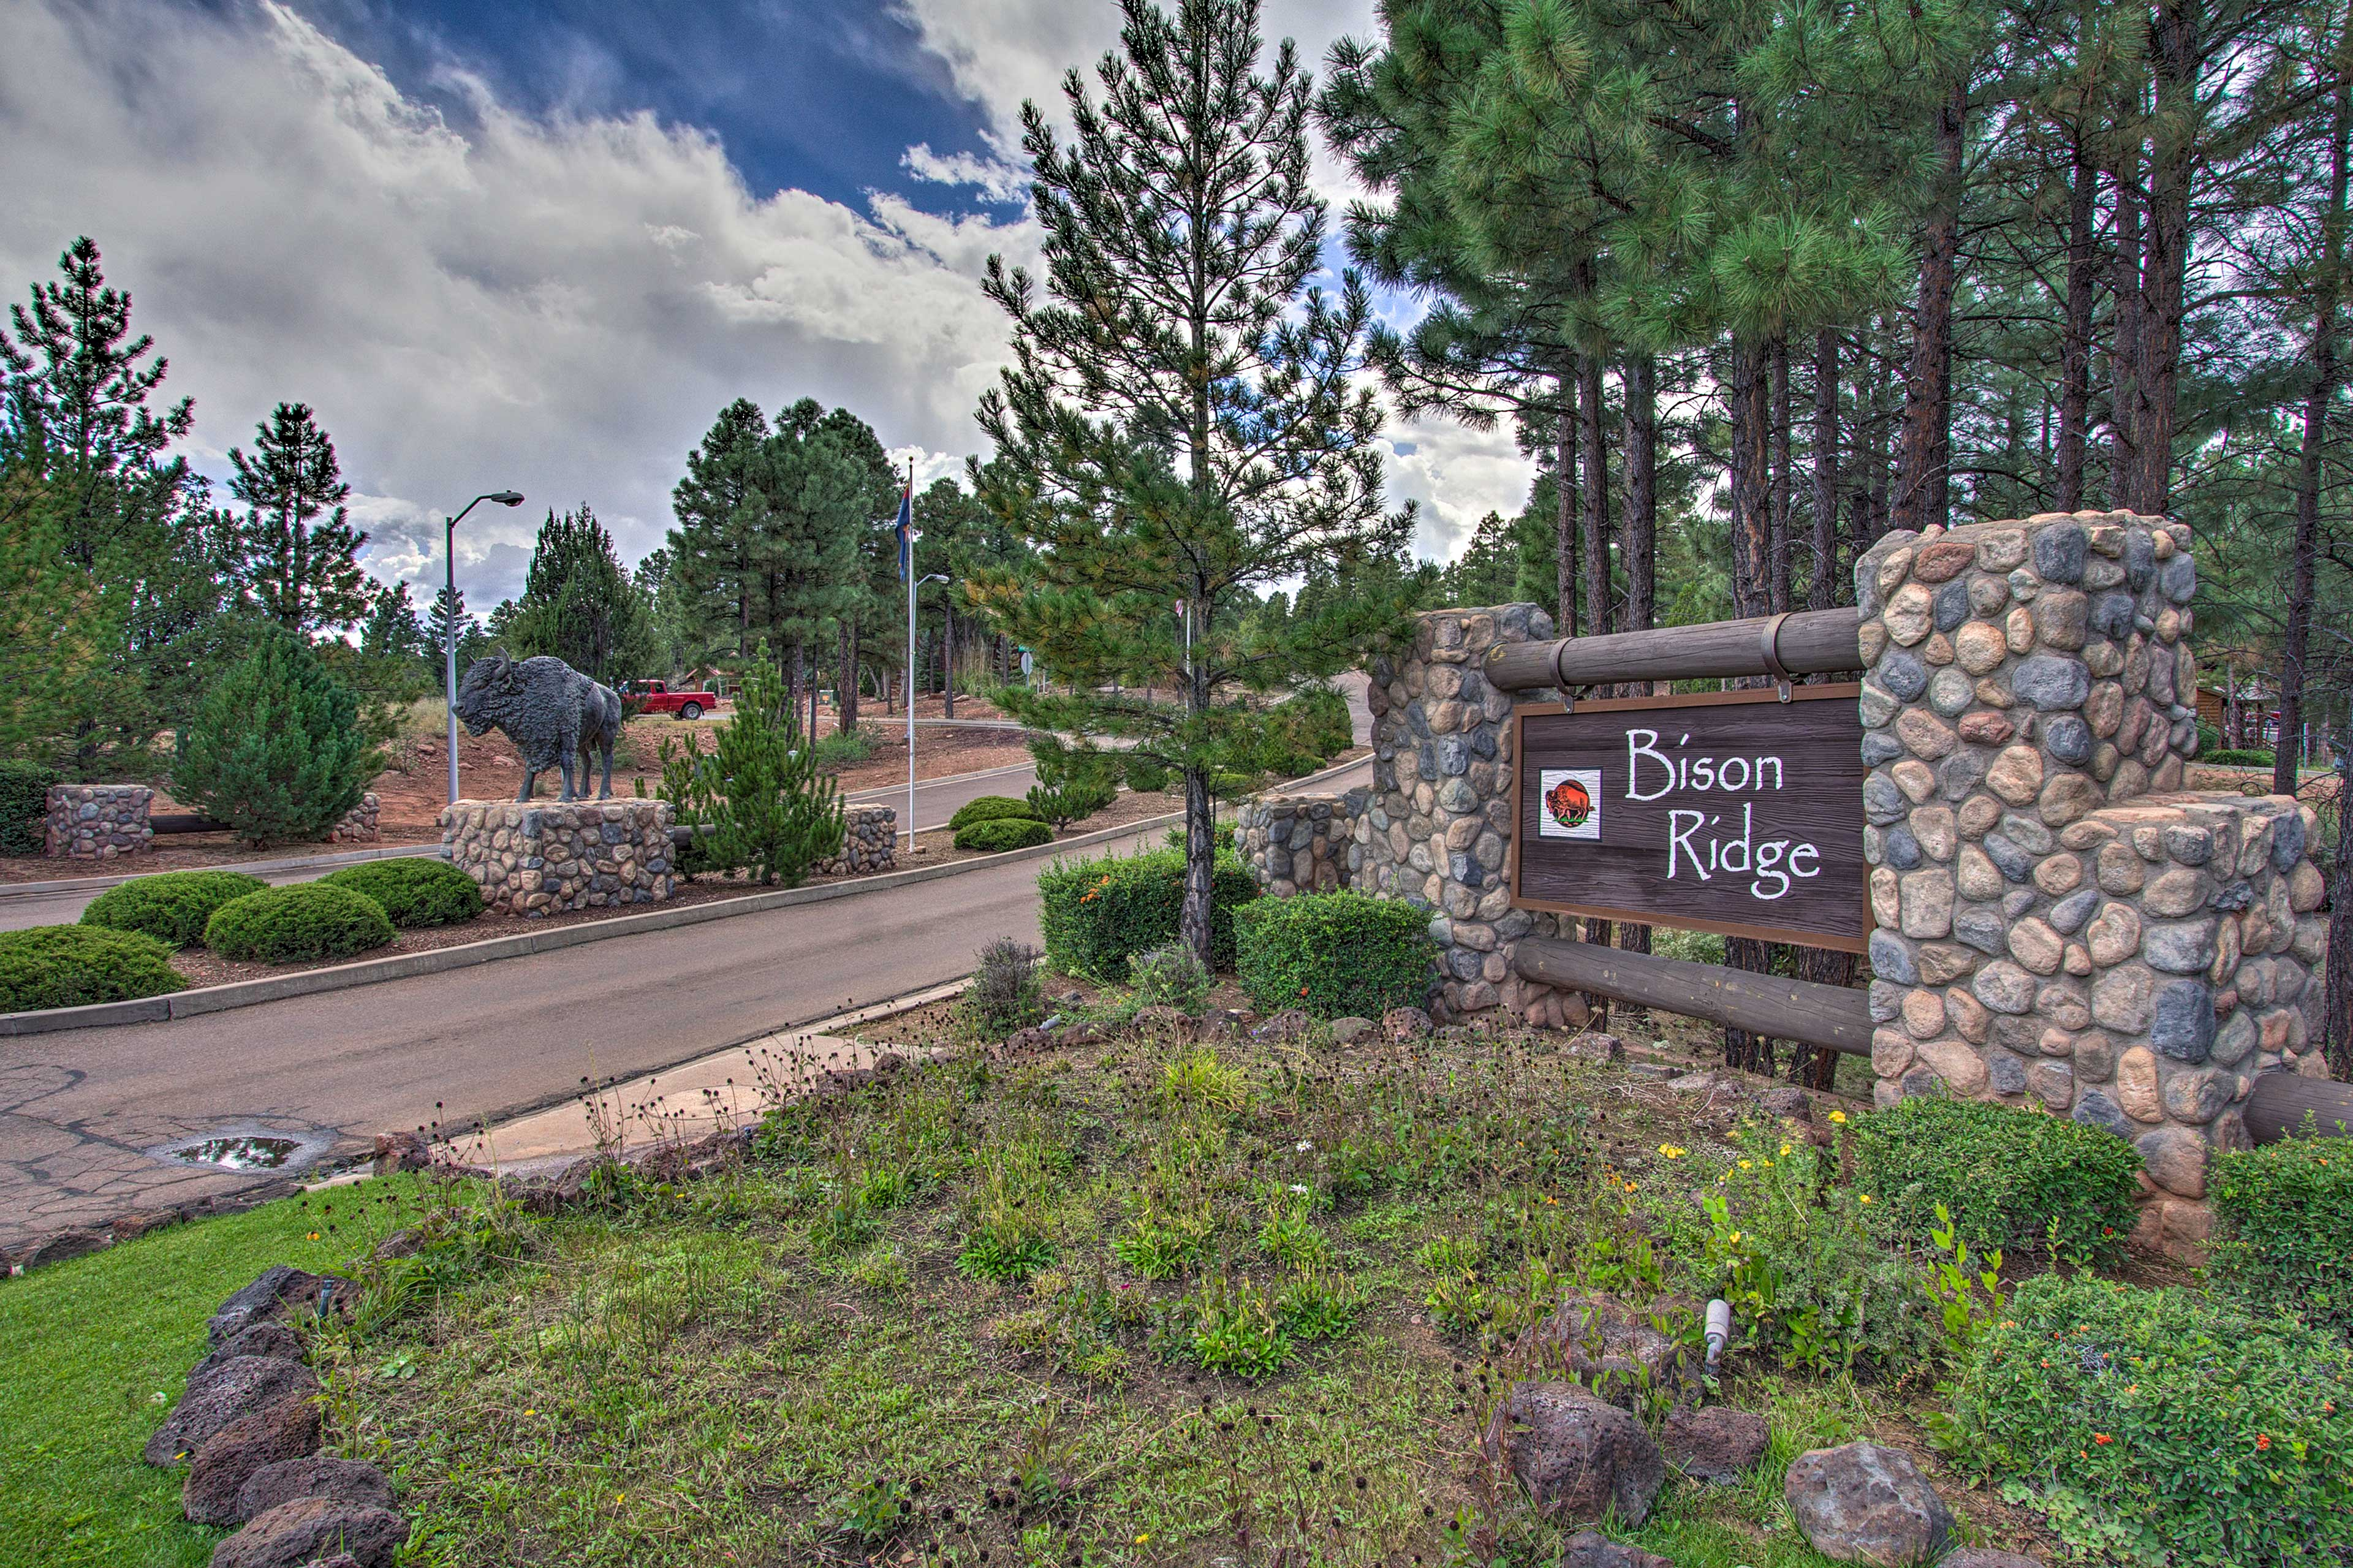 Welcome to the Bison Ridge community!